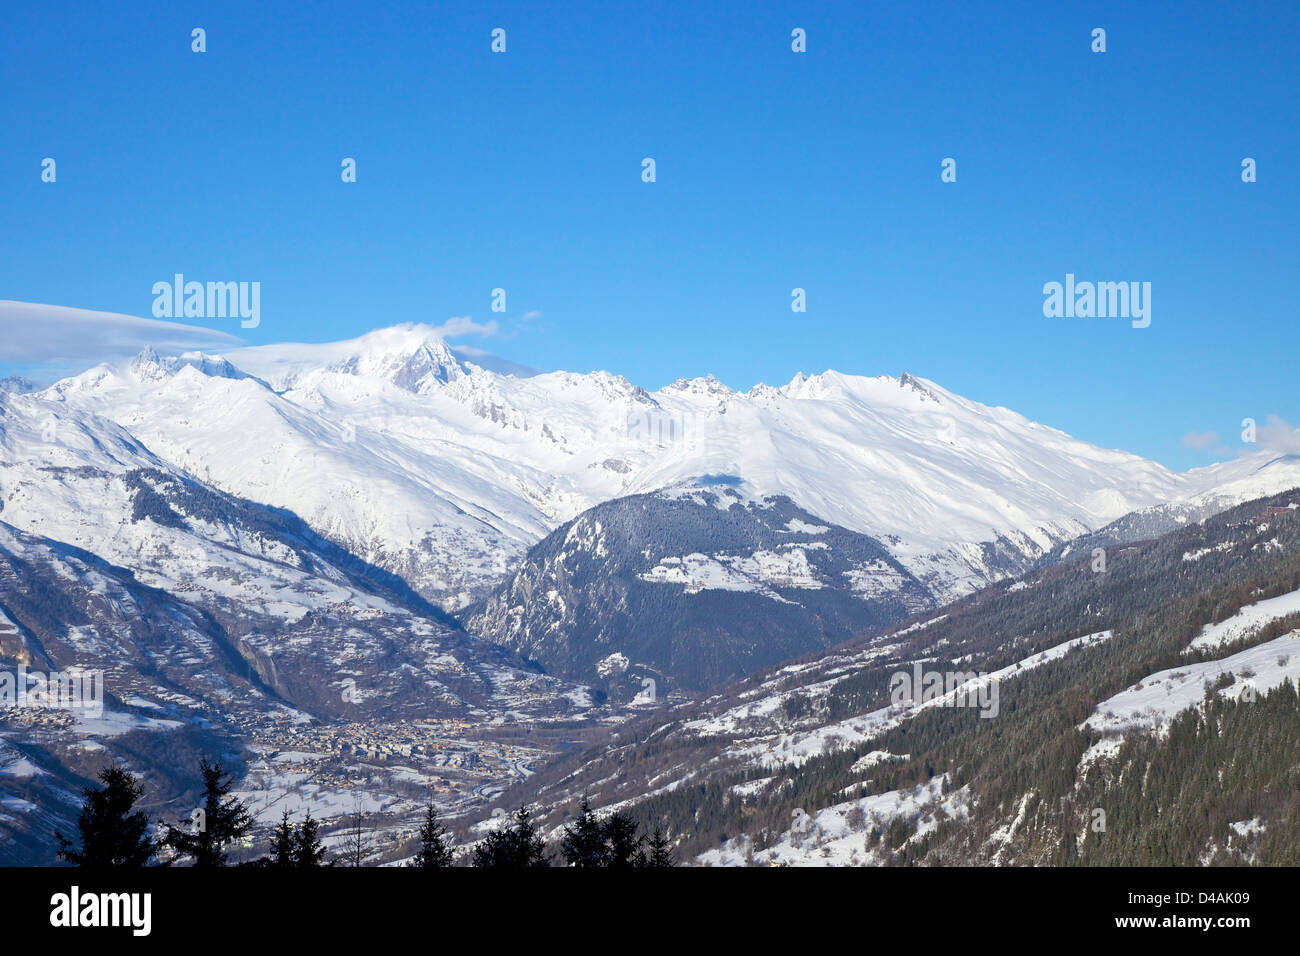 Mont Blanc from Les Coches, Les Arcs, Savoie, France, Europe - Stock Image